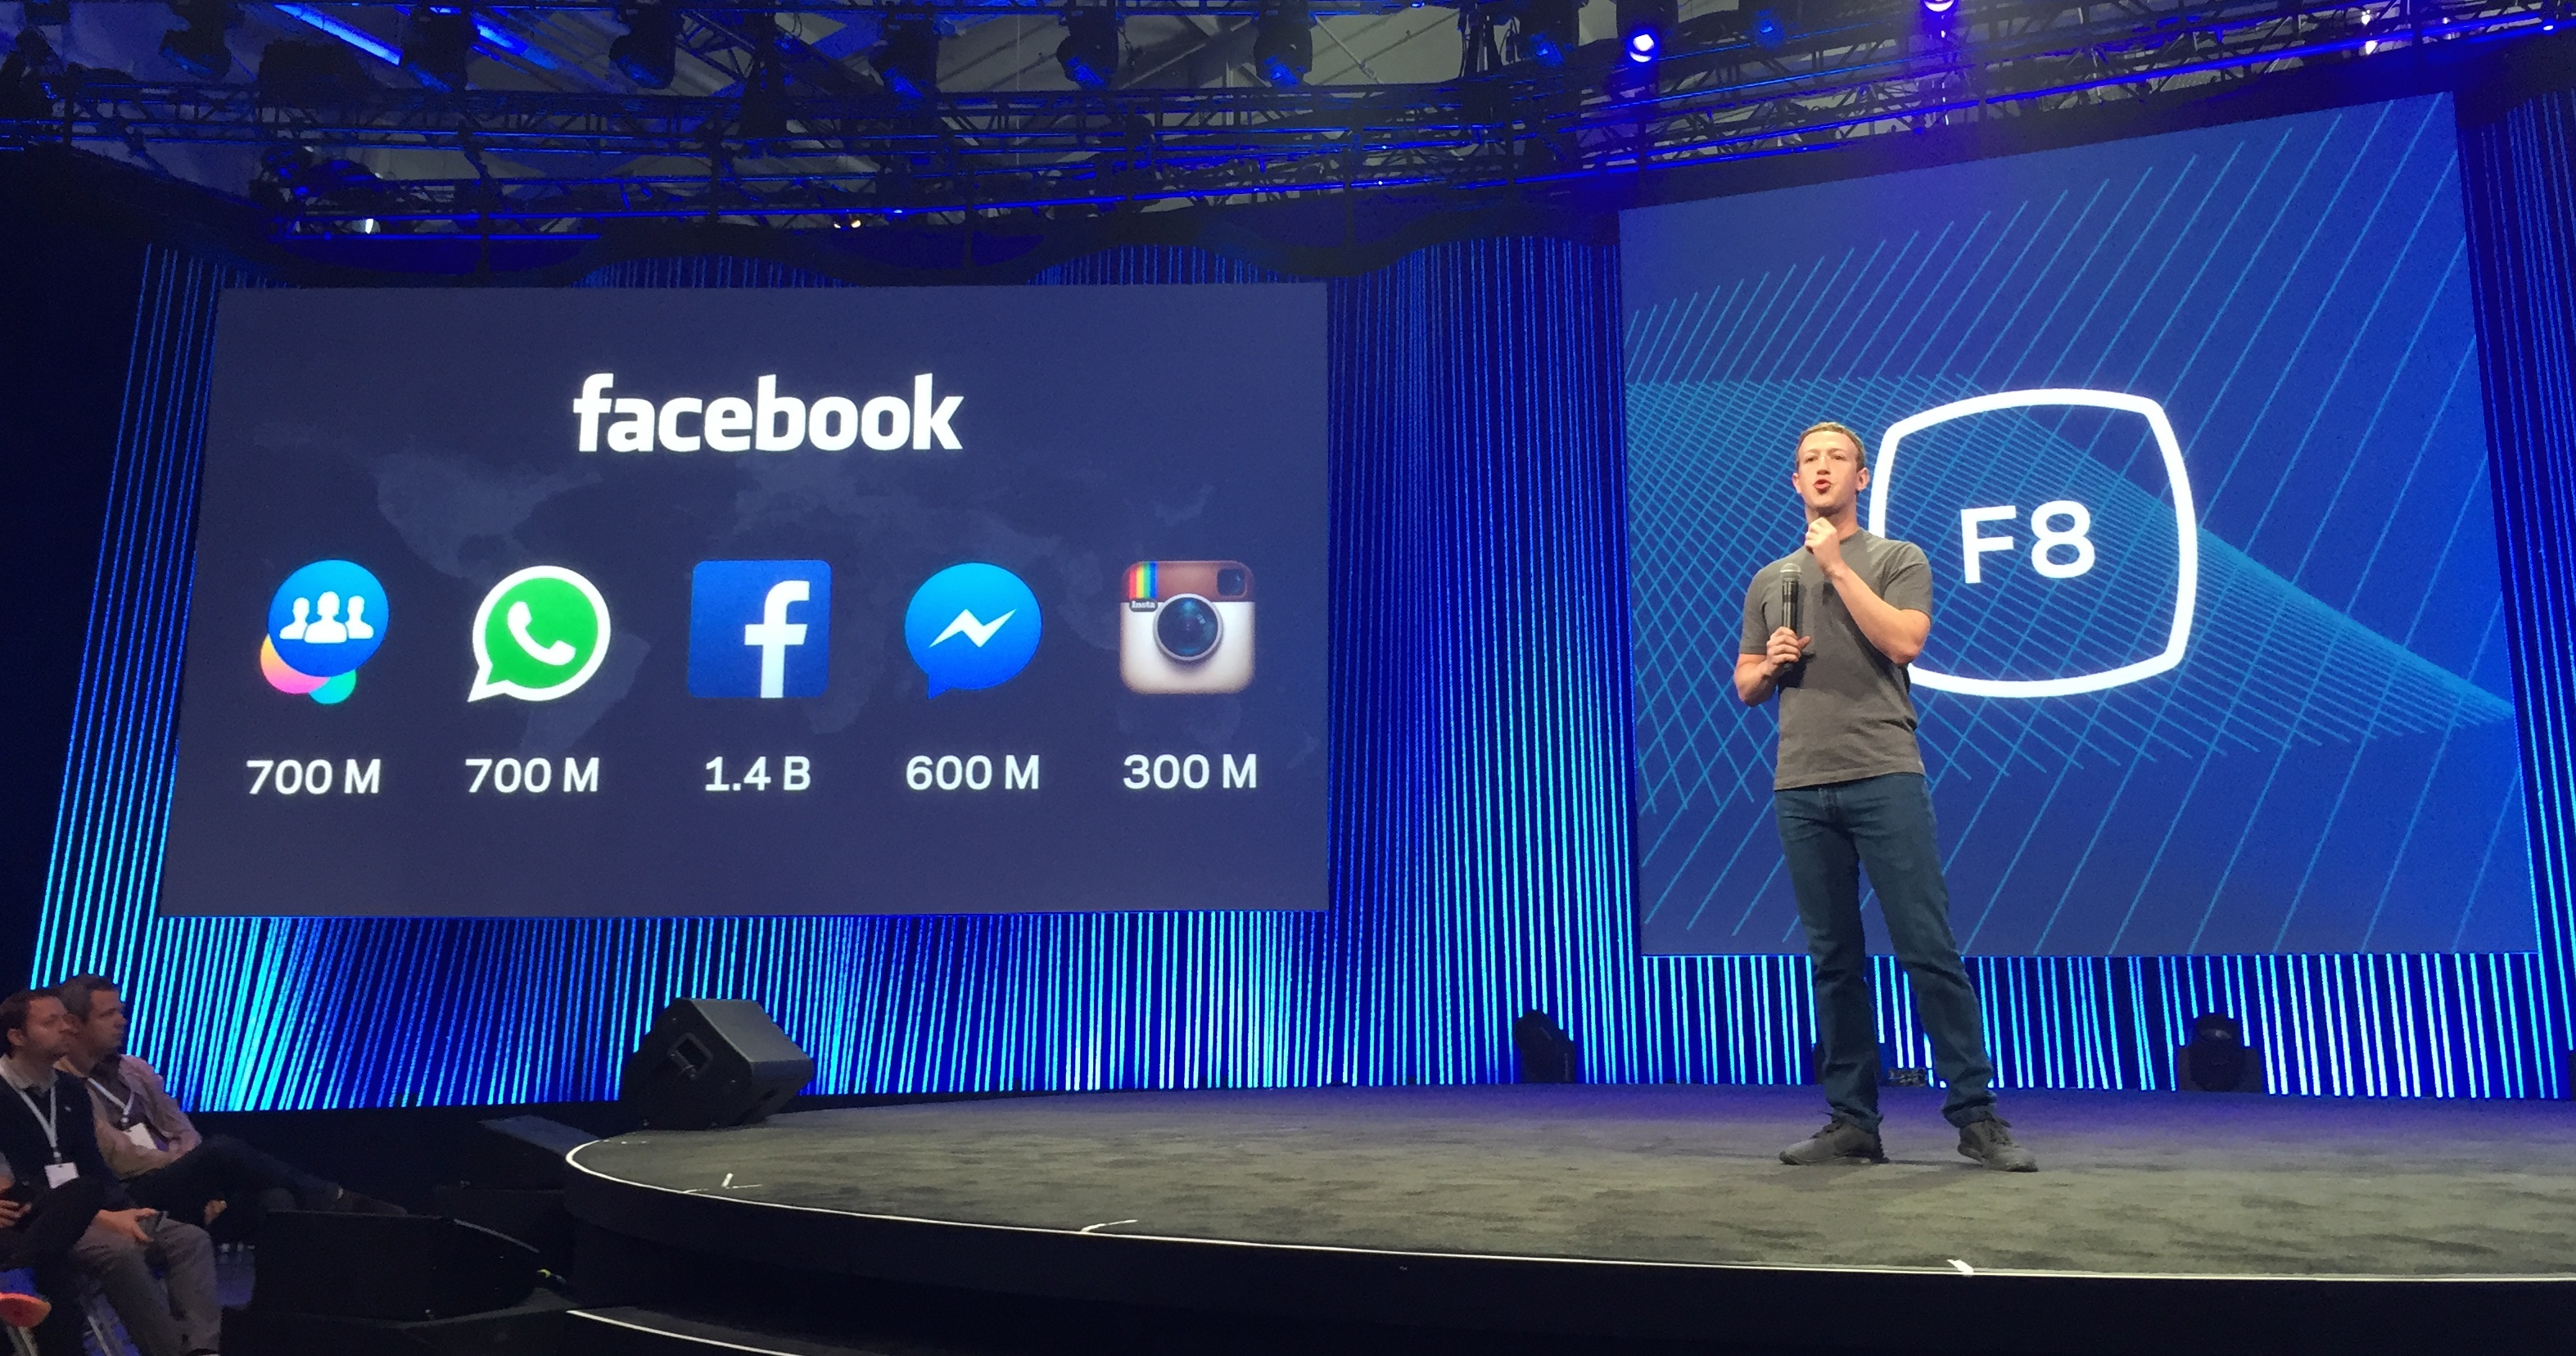 Facebook's Augmented Reality Social Media Marketing